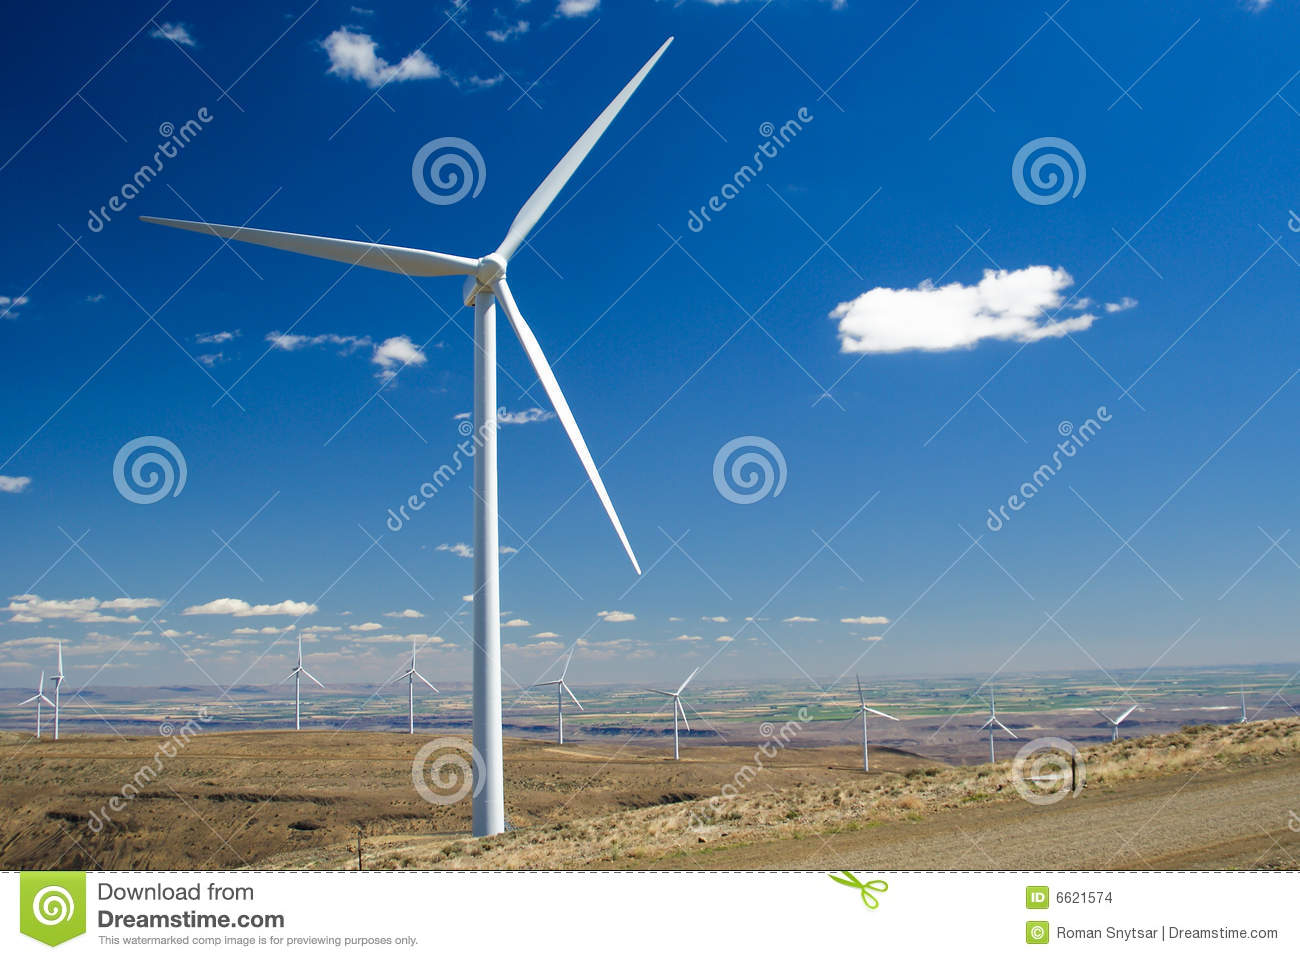 Wind turbine installation with rolling hills and fields in background.